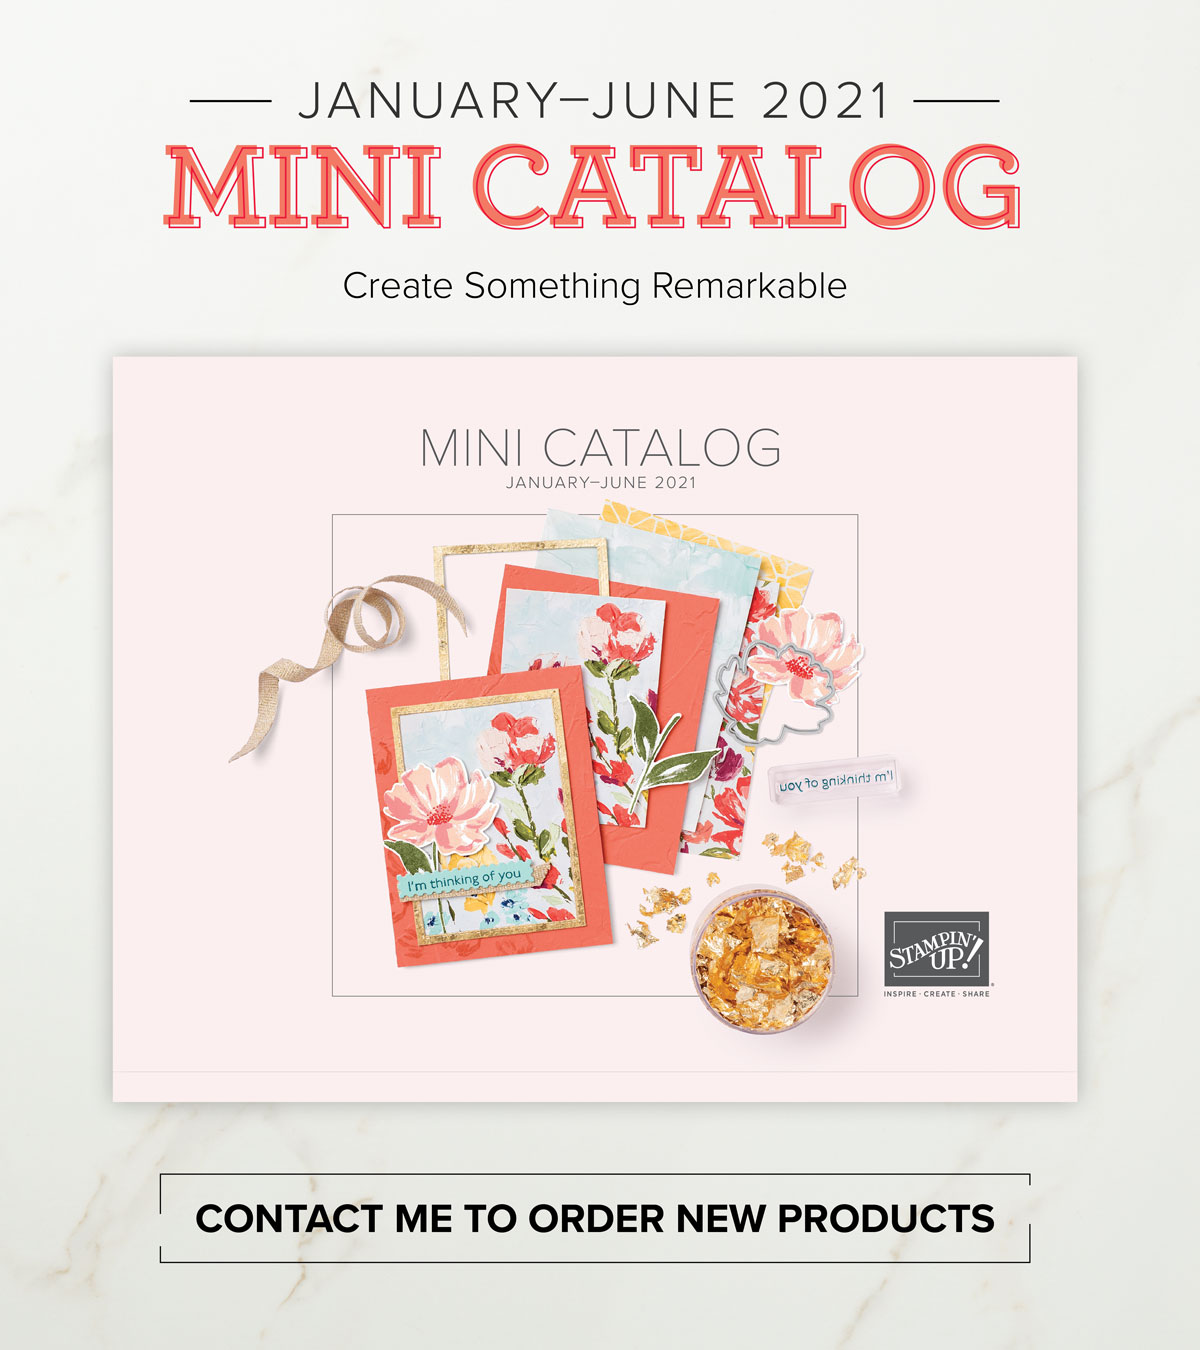 Download Digital Copy of the January-June Mini Catalog